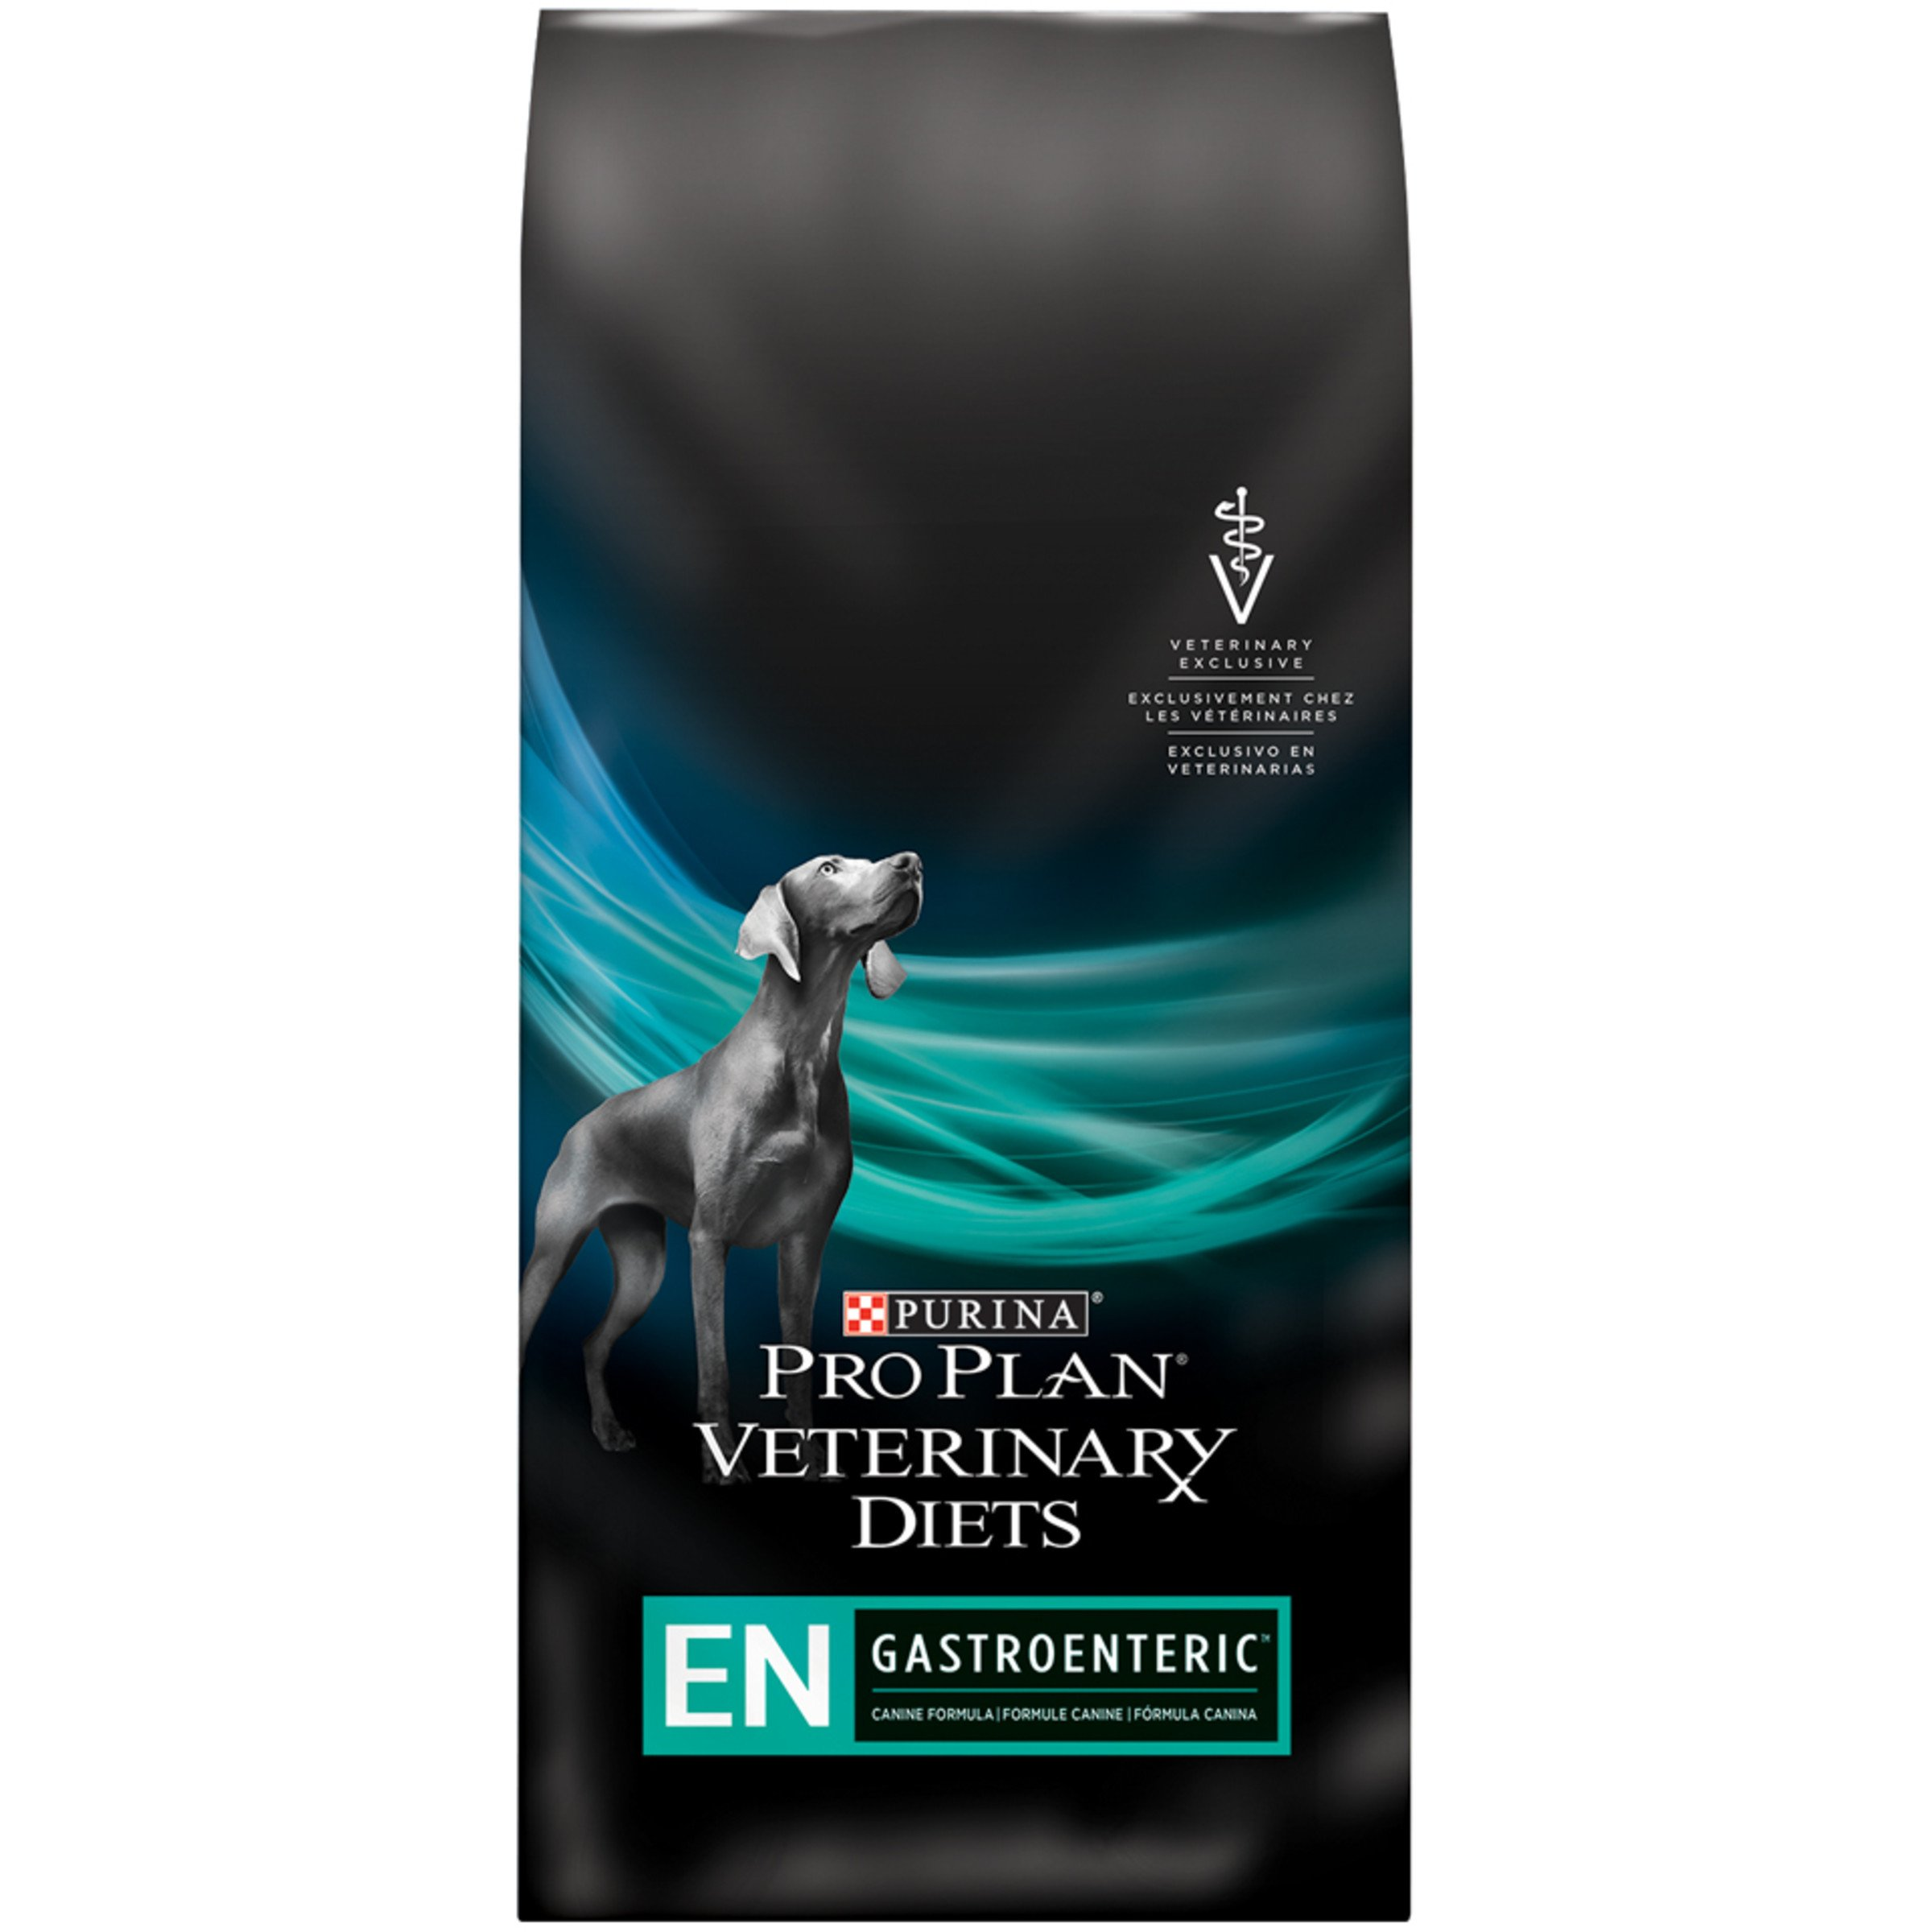 Purina Pro Plan Veterinary Diets 1 Count Gastroenteric Adult Dog Food, 32 lb